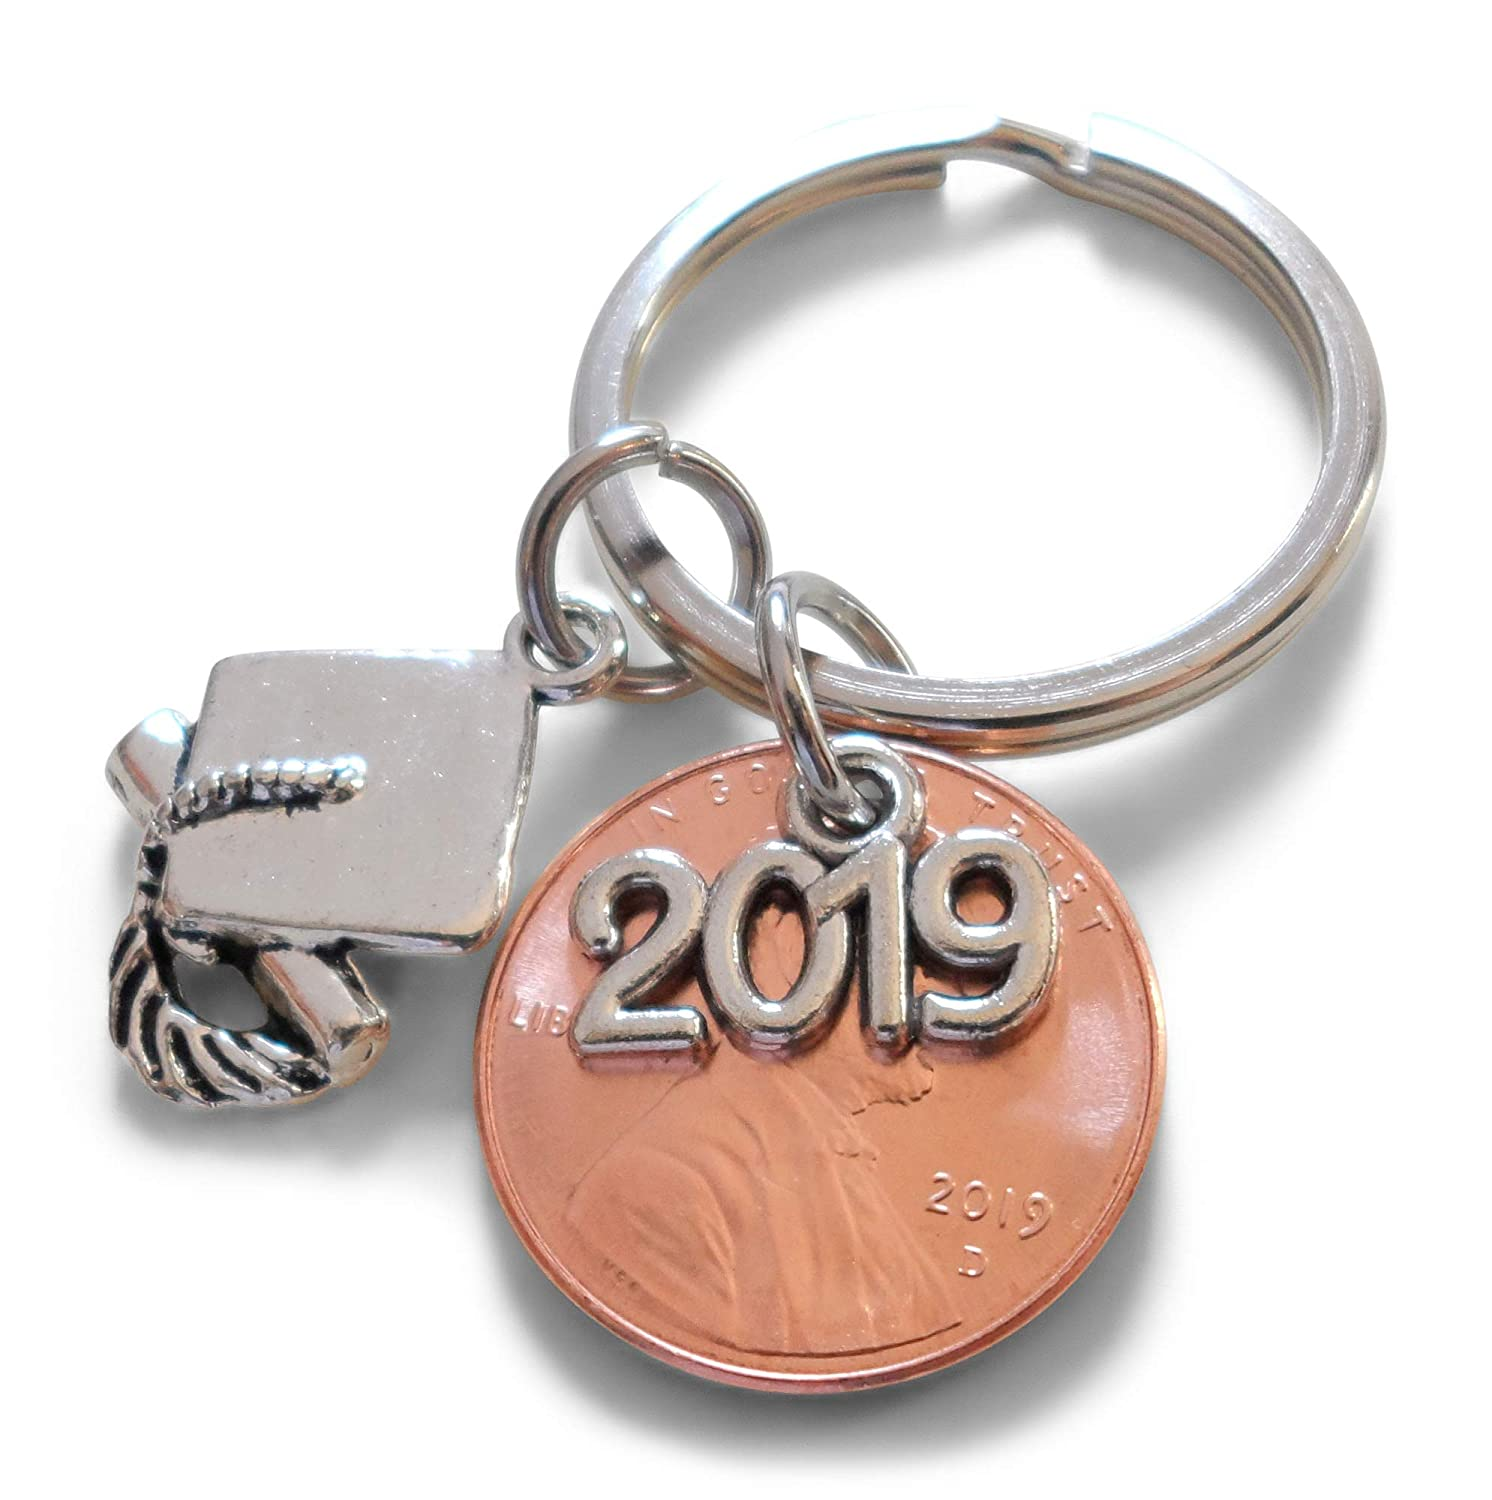 Amazon com: 2019 Charm Layered Over 2019 Penny Keychain, with Cap